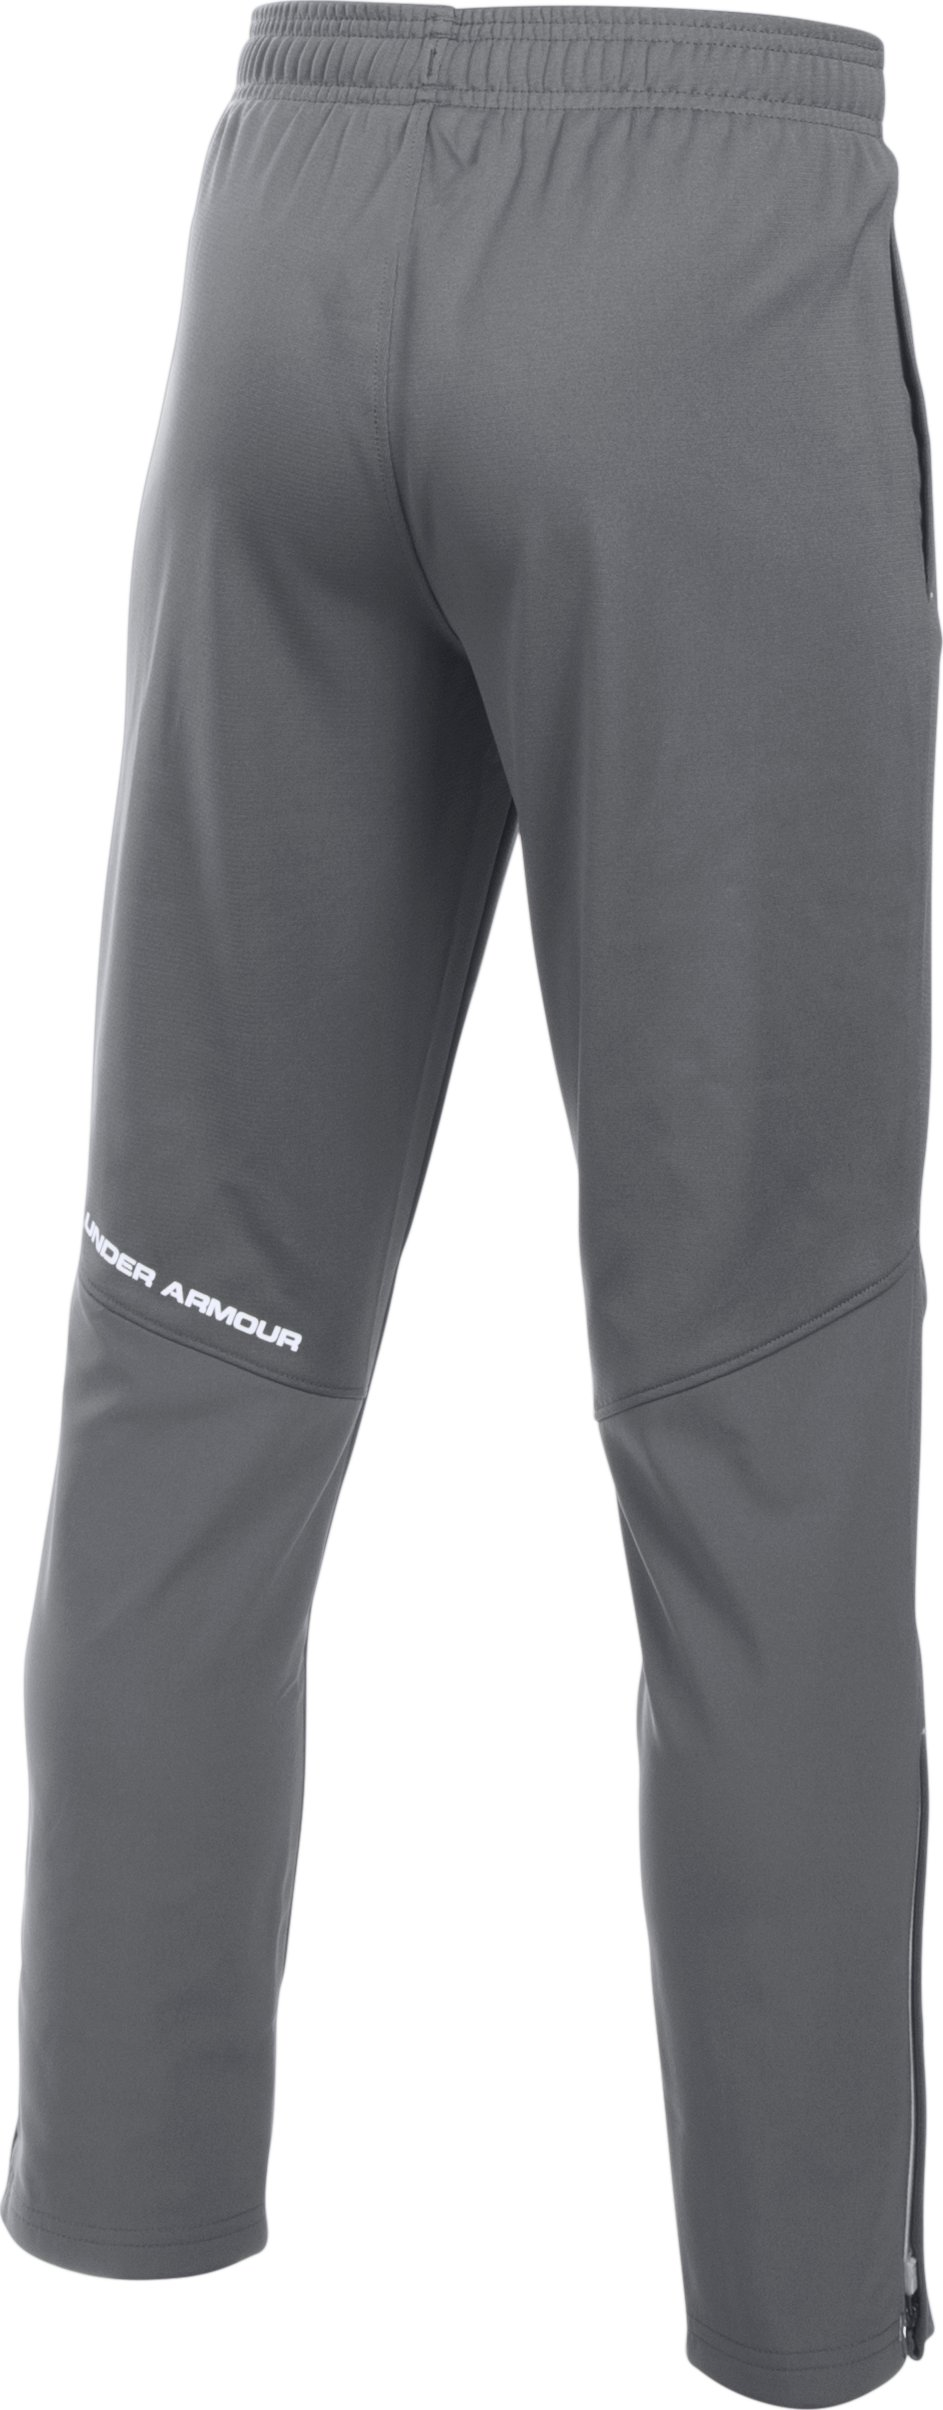 Boys' UA Challenger Knit Pants, Graphite